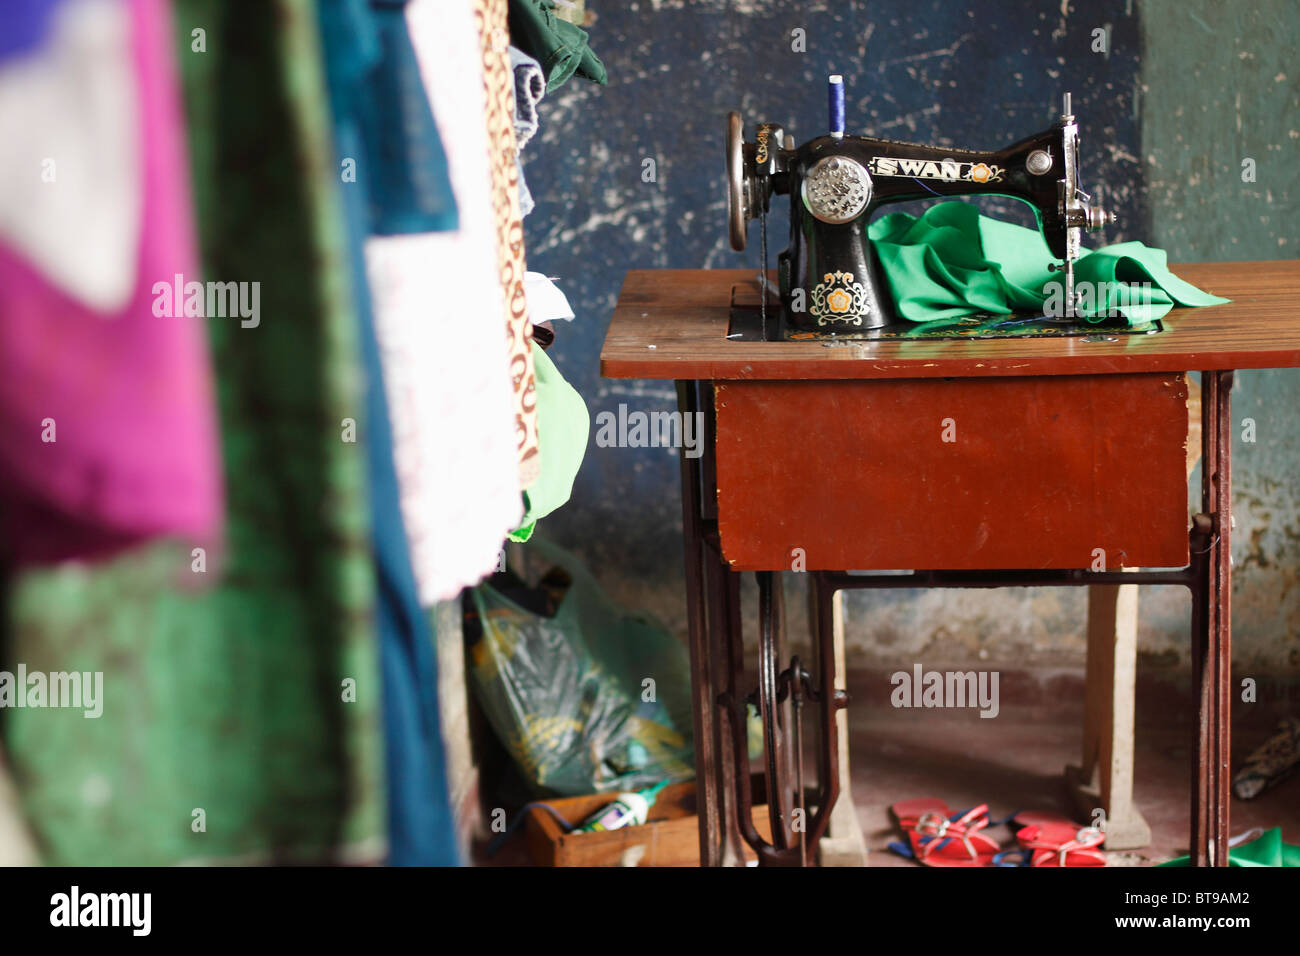 An Antique Sewing Machine Next to a Wall of Handmade Clothing.  Horizontal orientation, full color, shallow depth - Stock Image